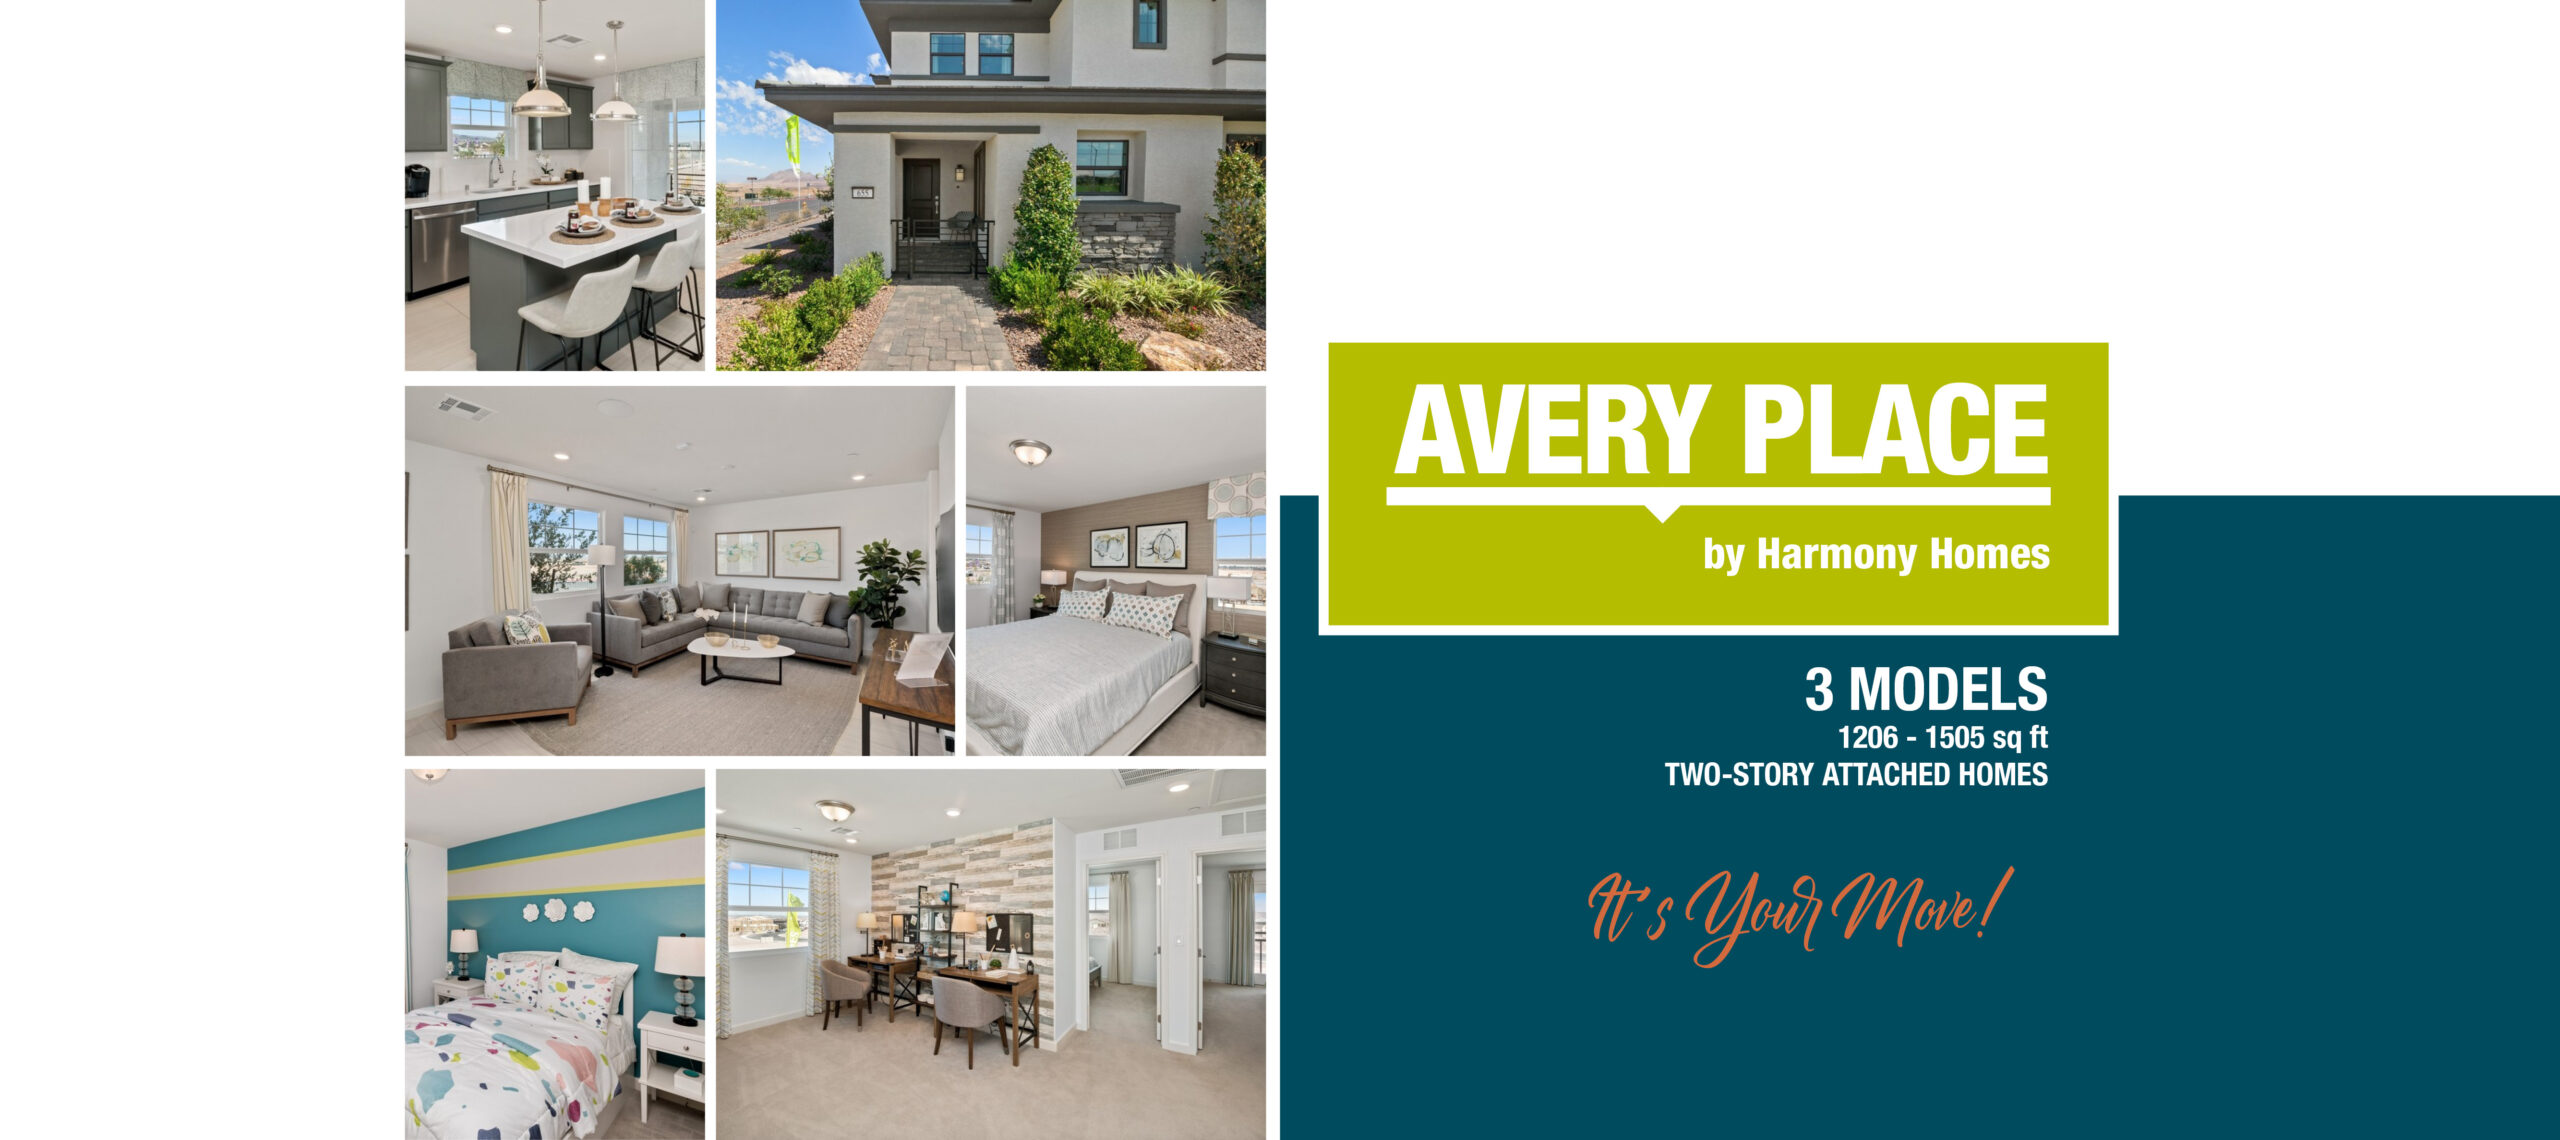 Avery Place